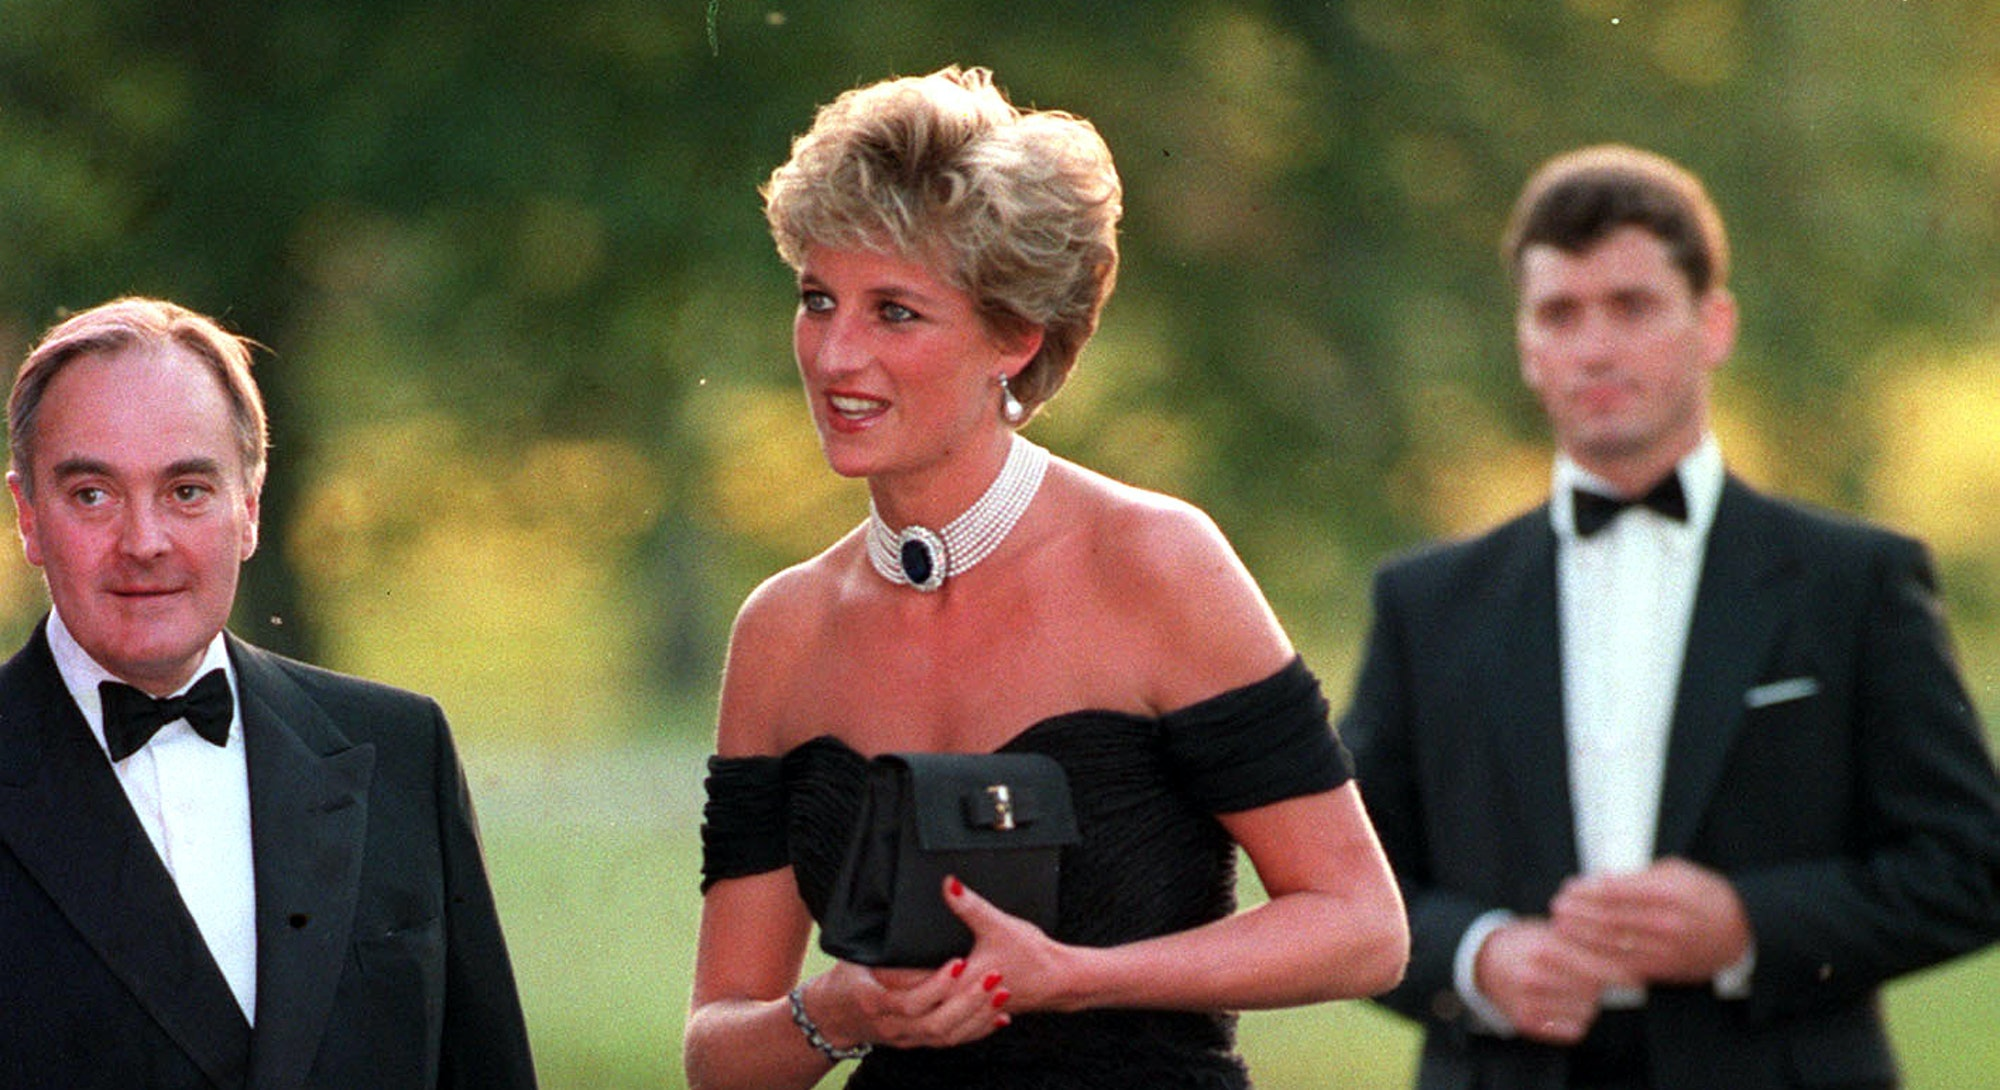 """Princess Diana wearing the """"revenge dress"""" as she arrives at the Serpentine Gallery"""